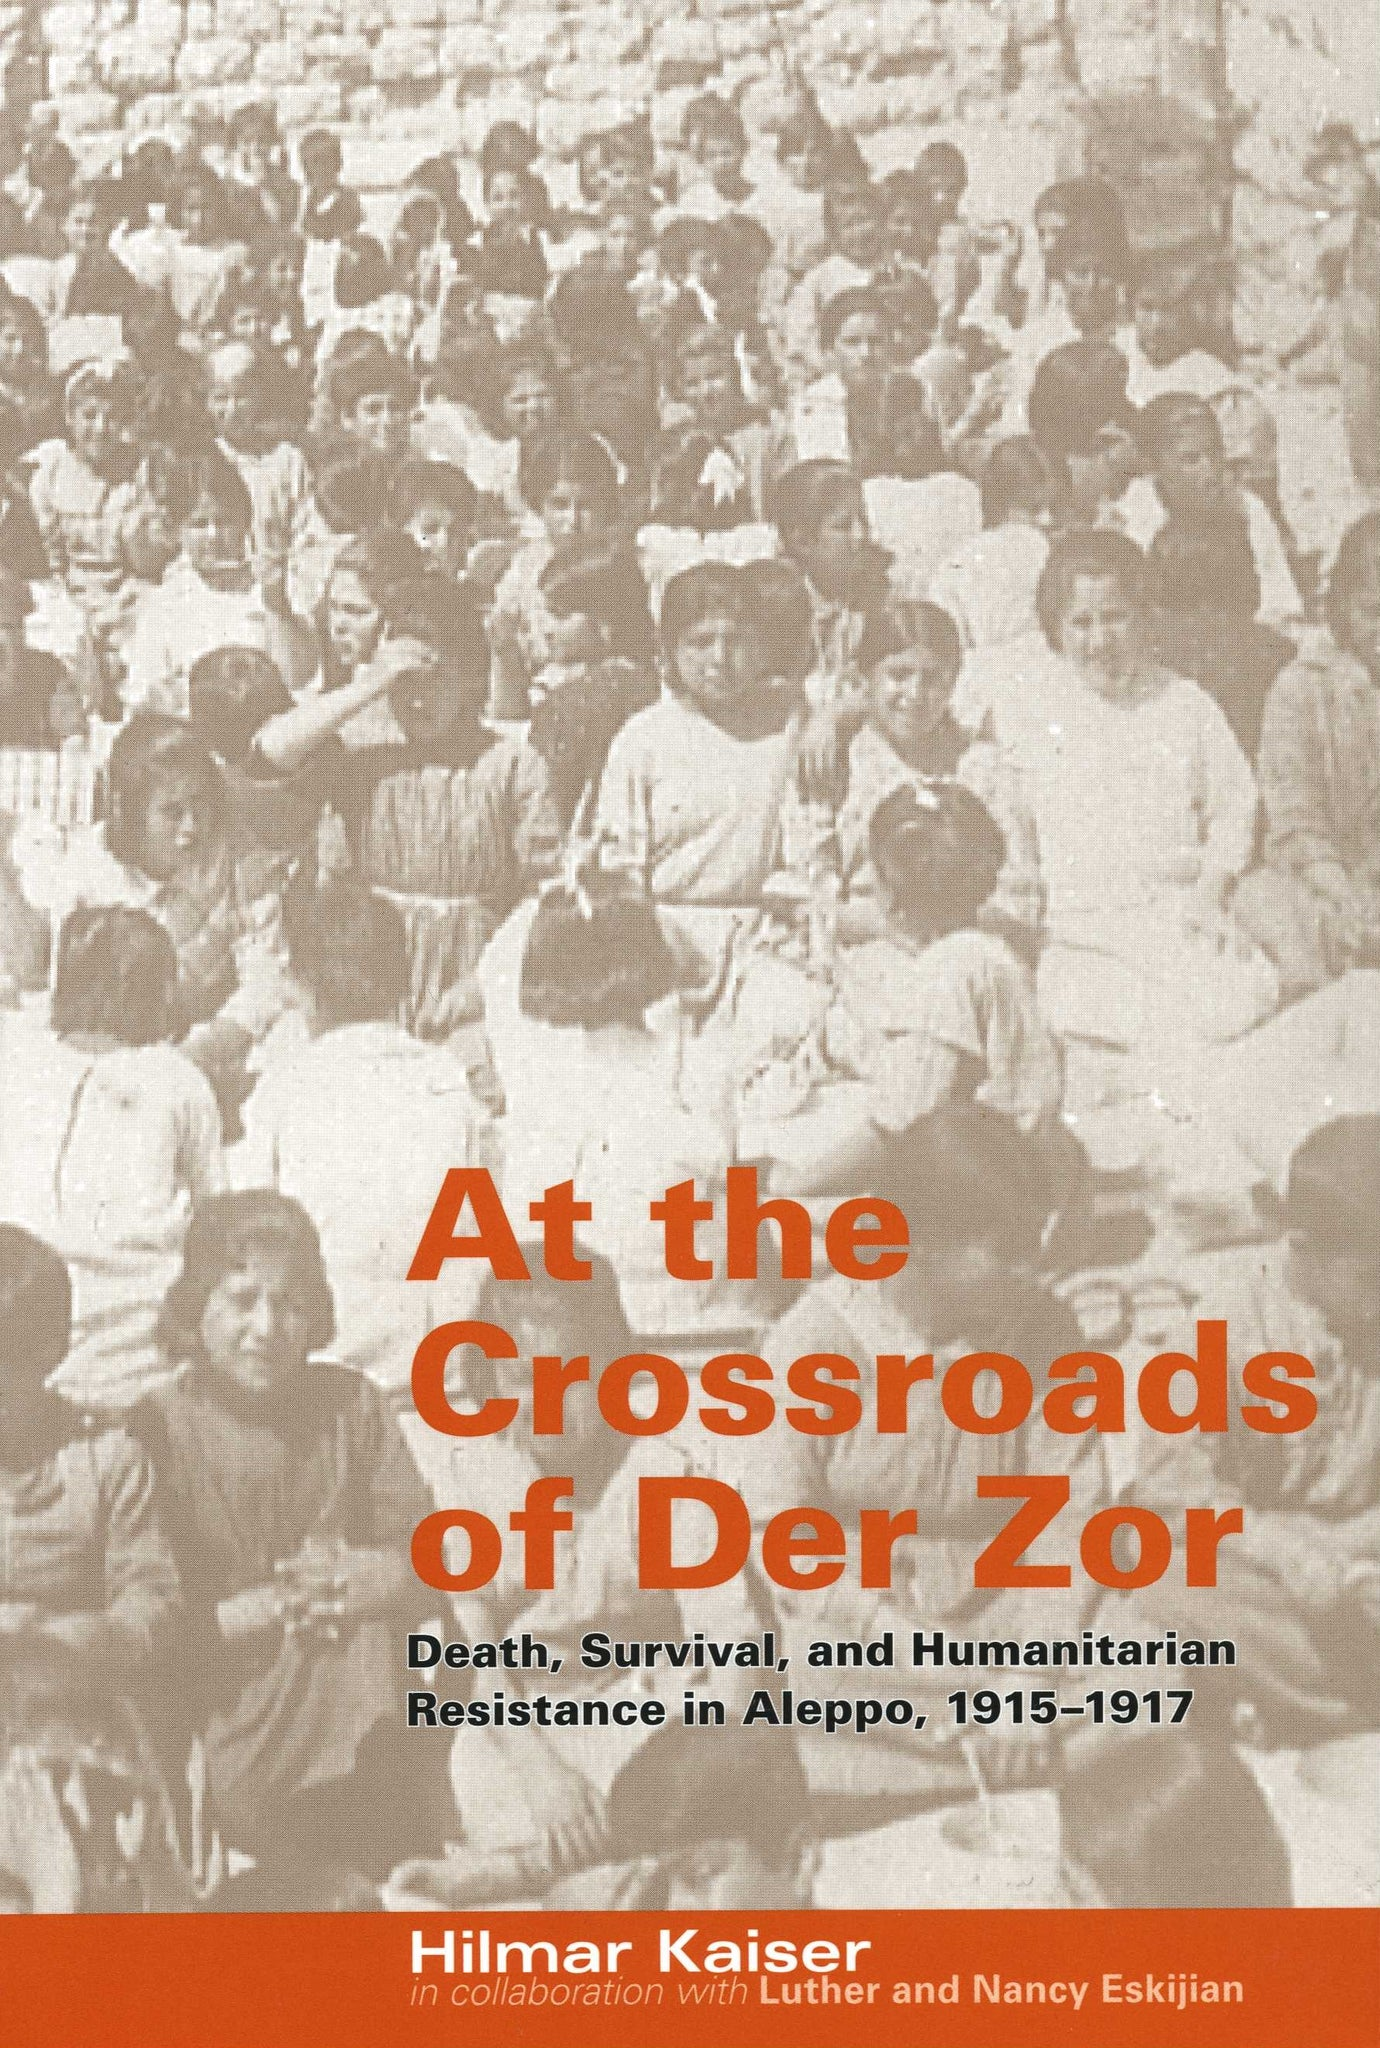 AT THE CROSSROADS OF DER ZOR: Death, Survival, and Humanitarian Resistance in Aleppo, 1915-1917